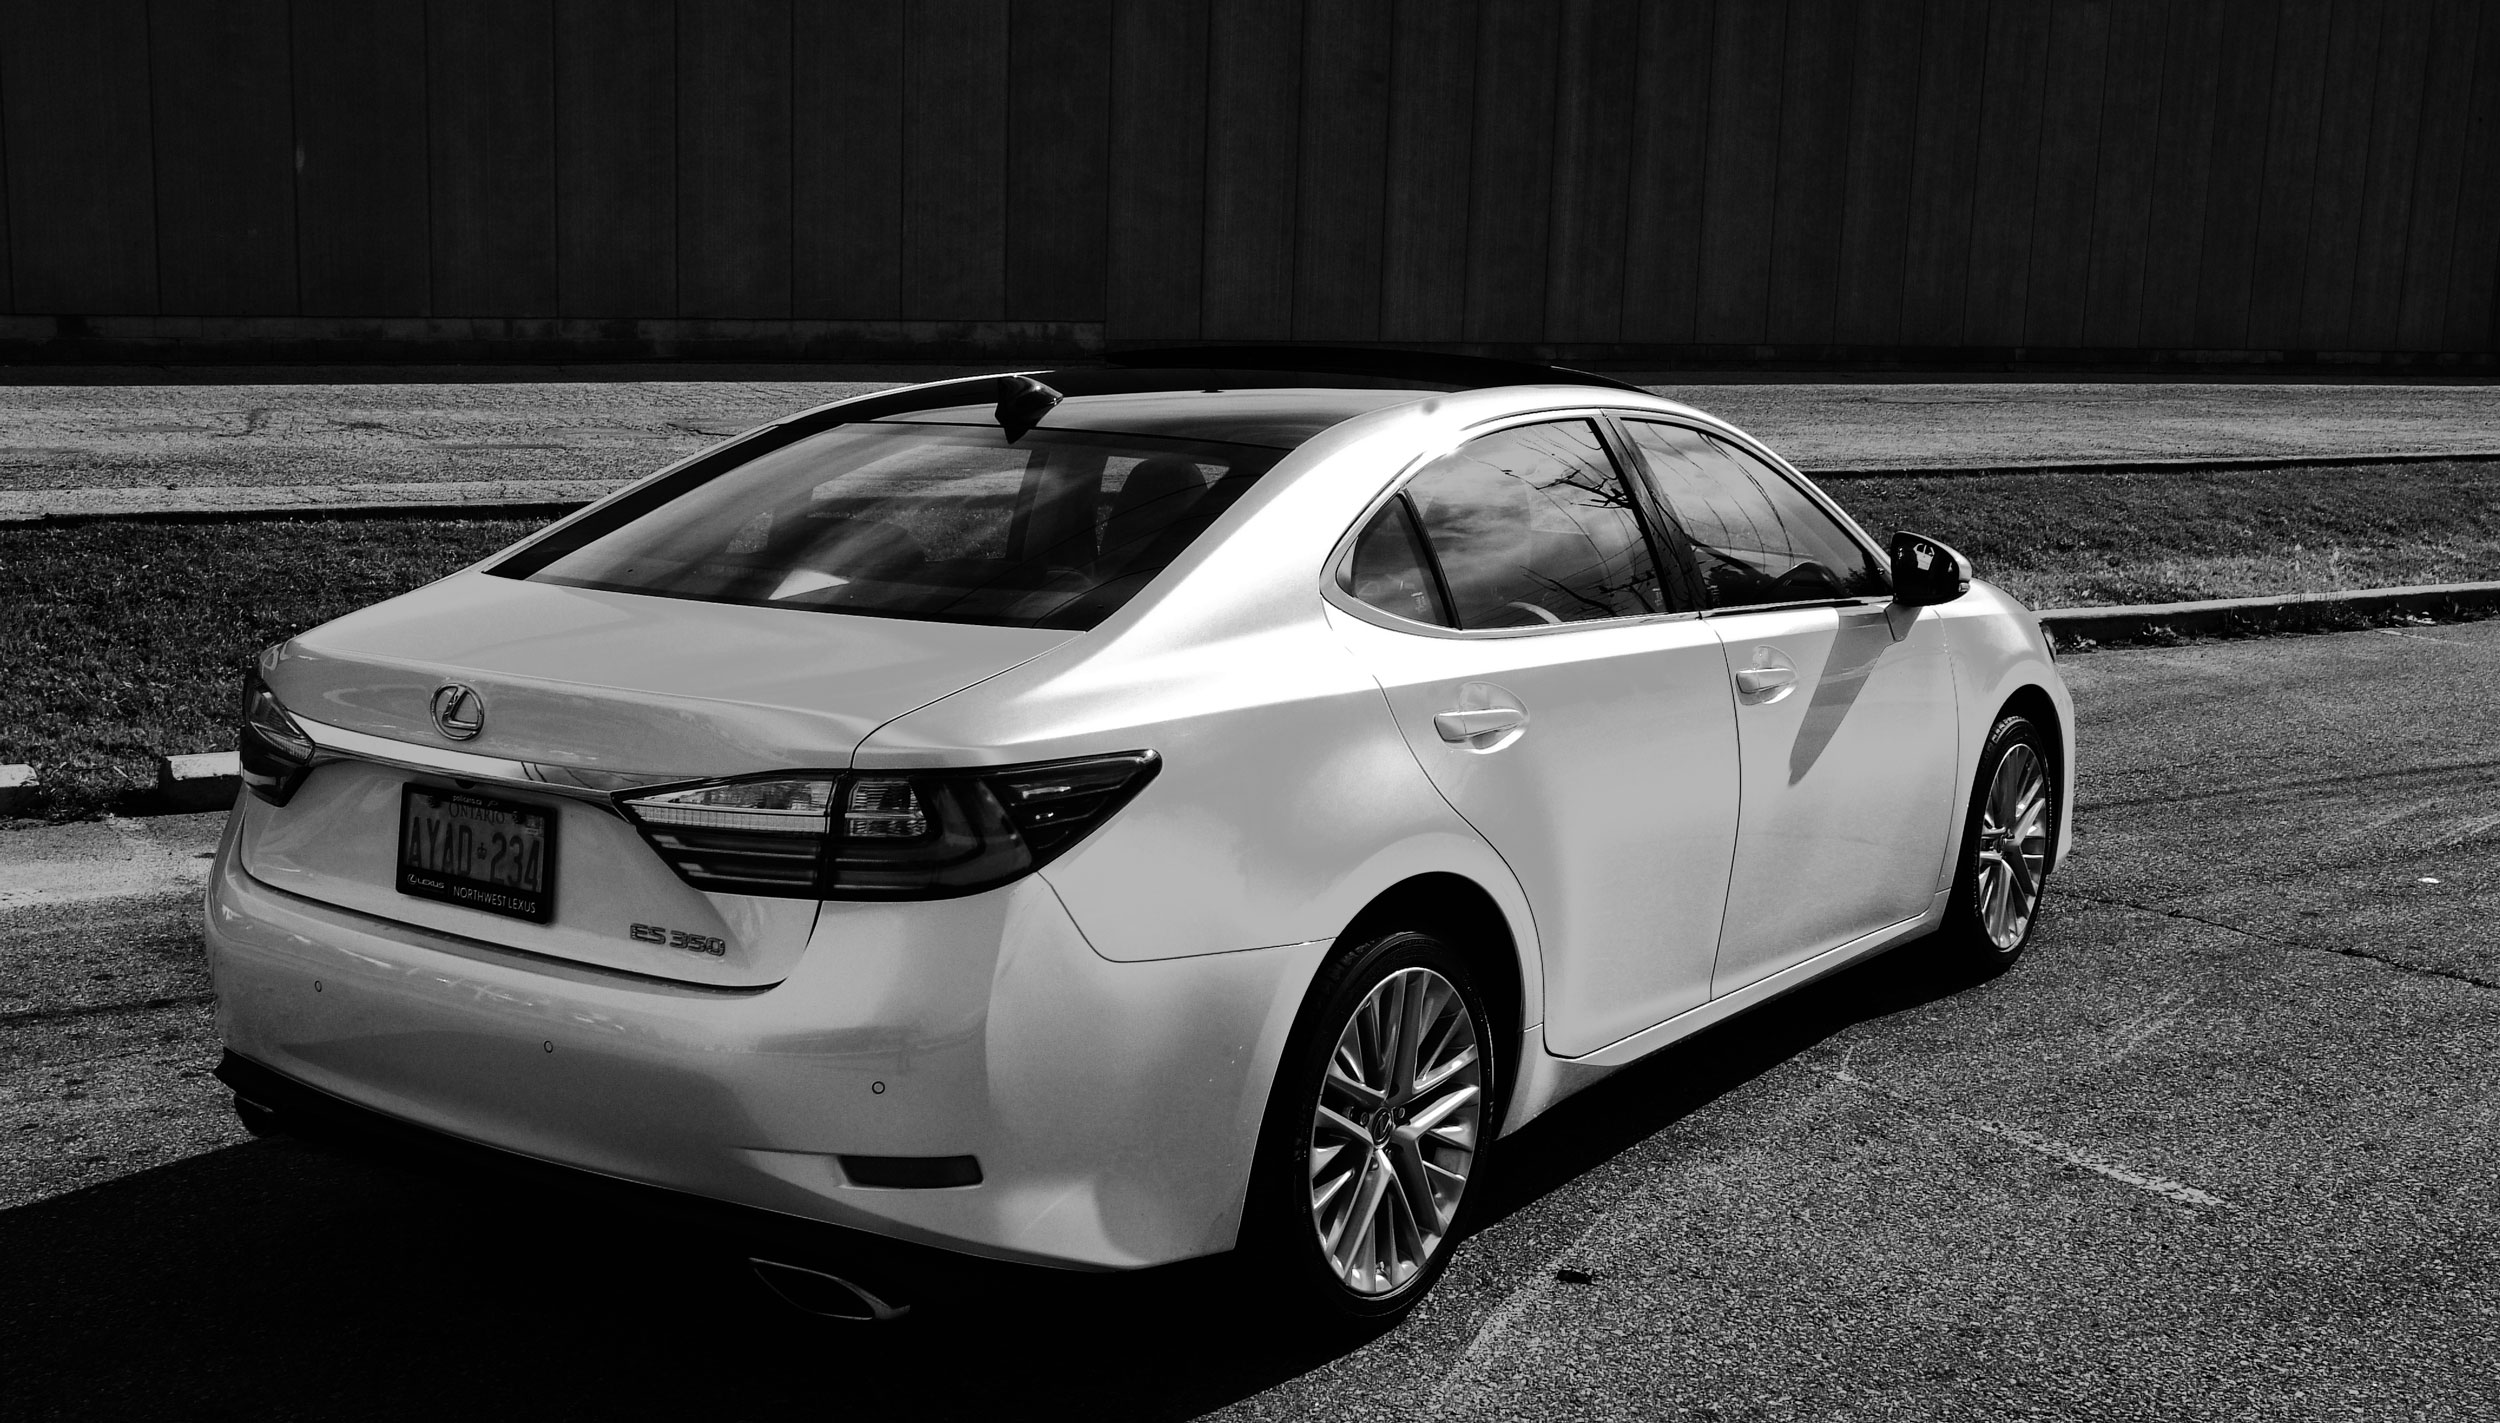 2016 Lexus ES Review - Rear quarter of the 2016 Lexus ES